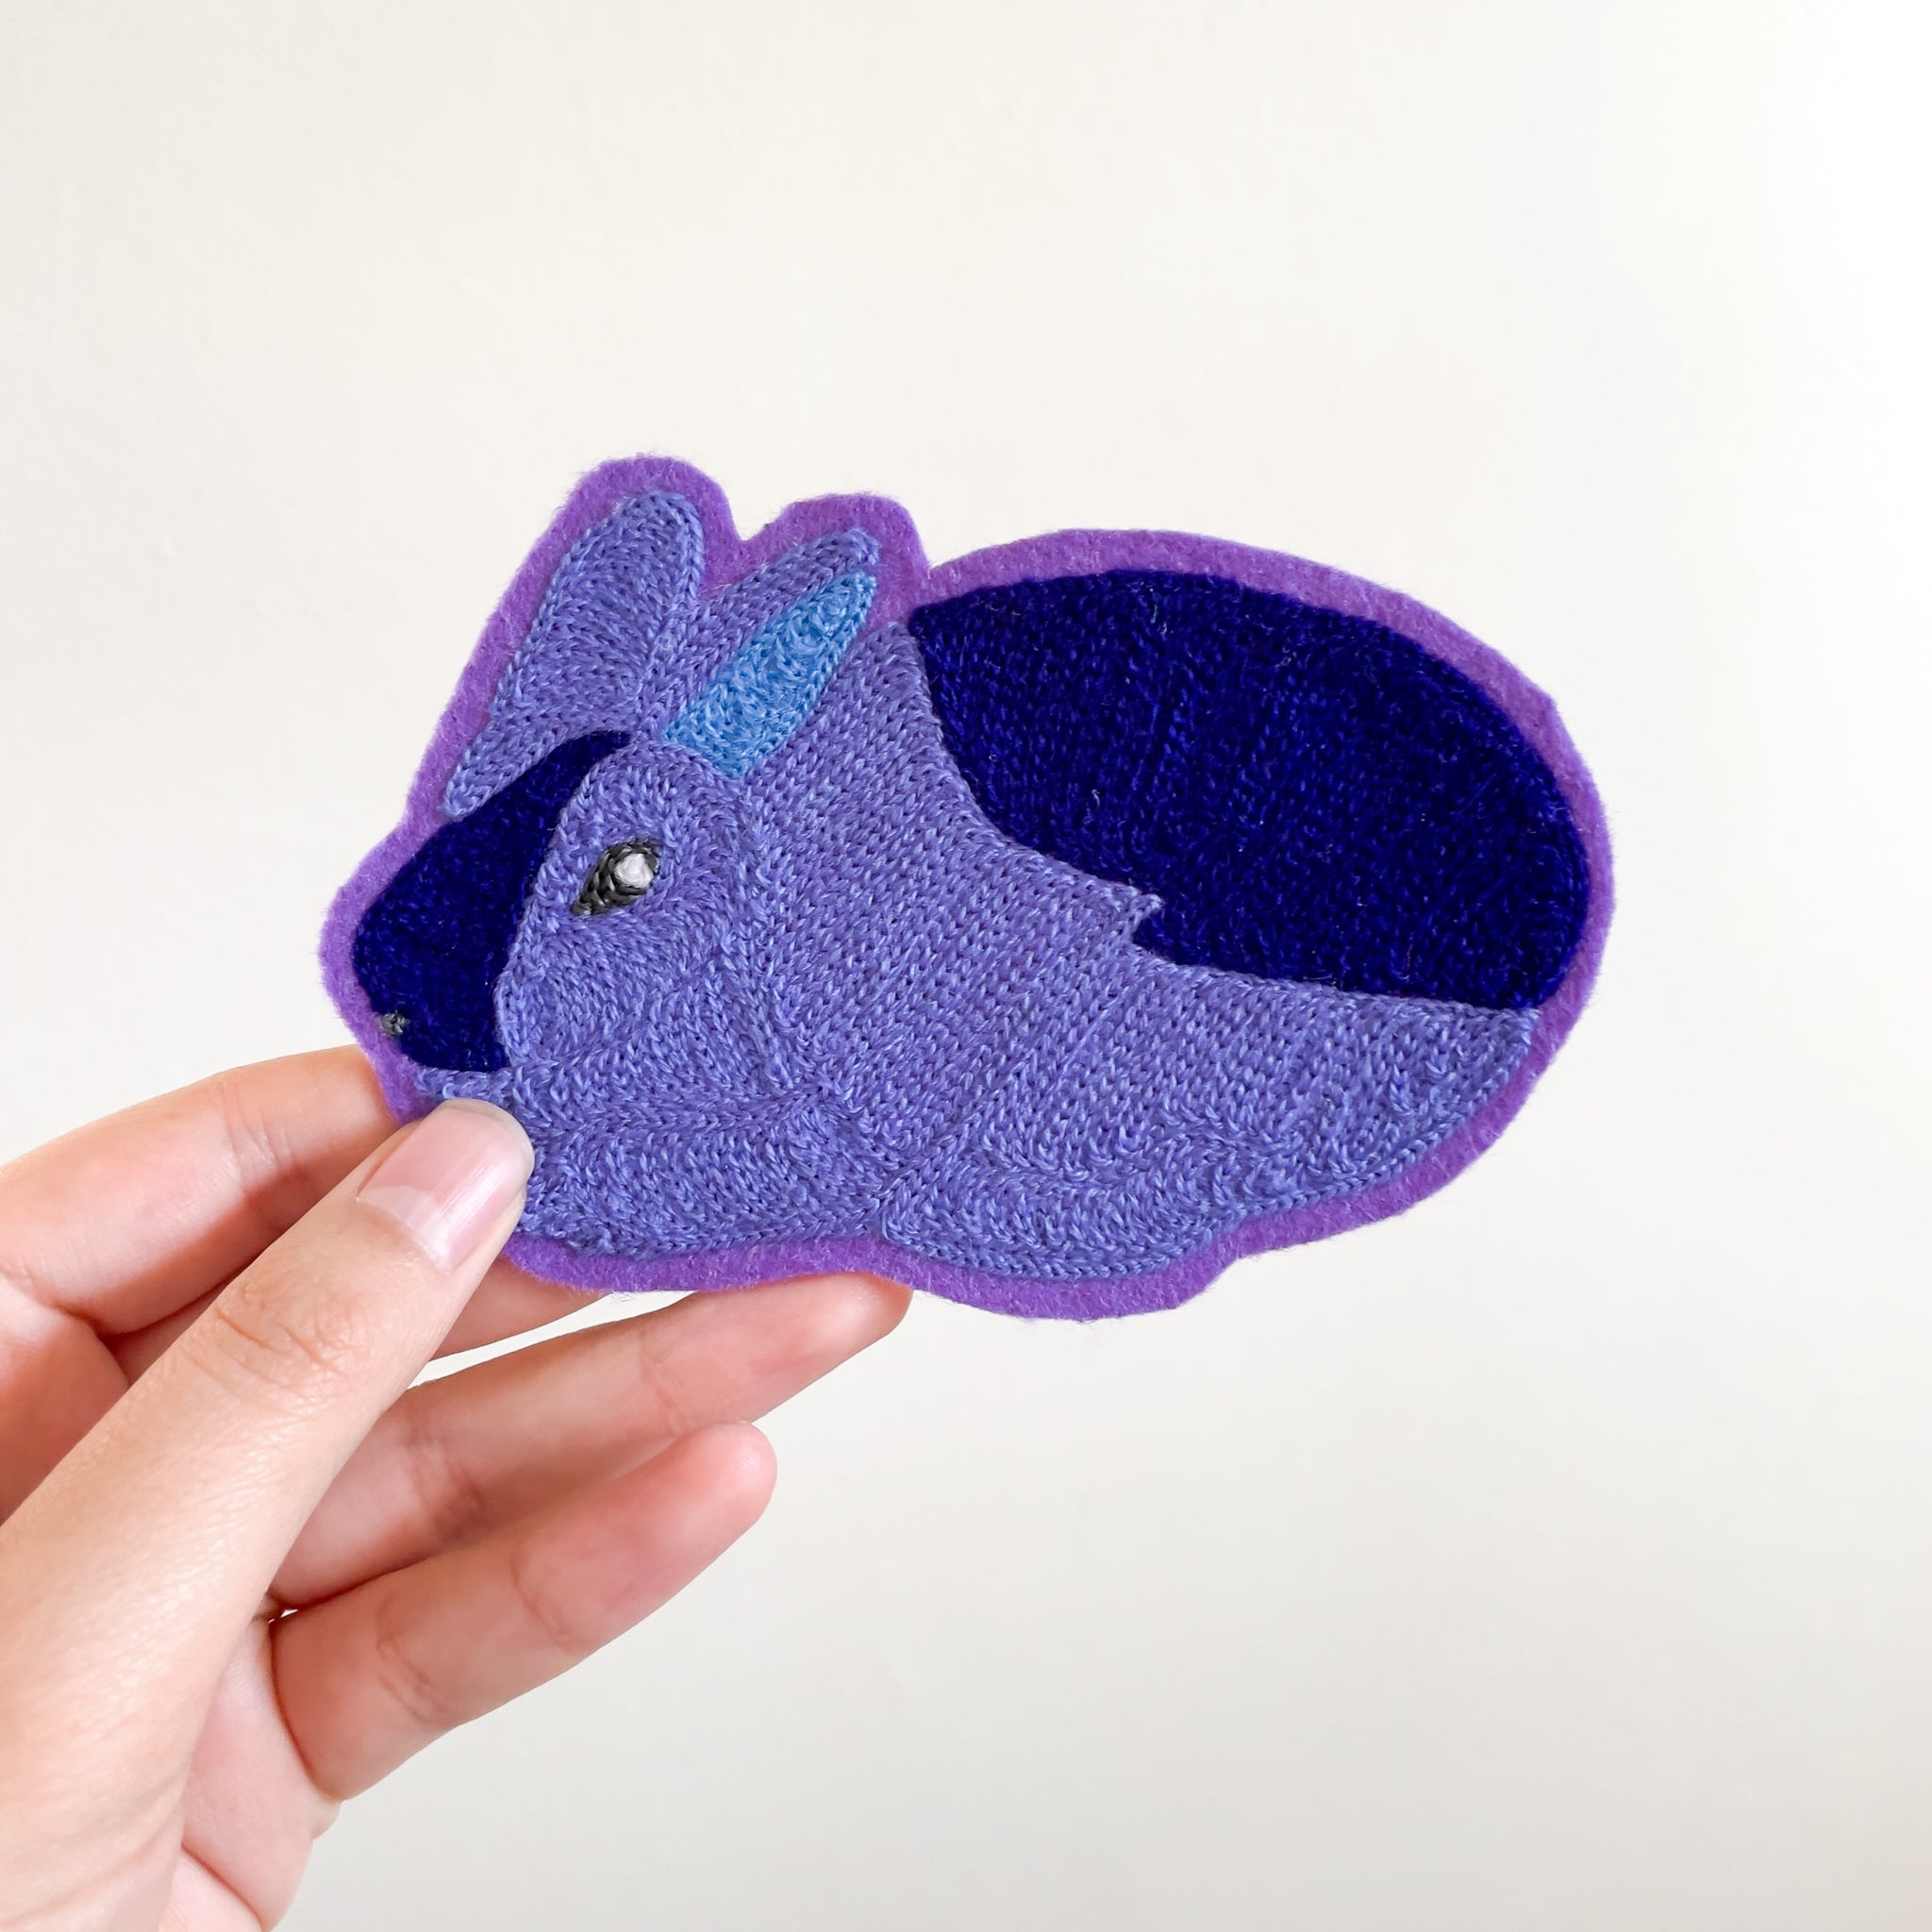 Periwinkle Bunny - Chainstitch Patch